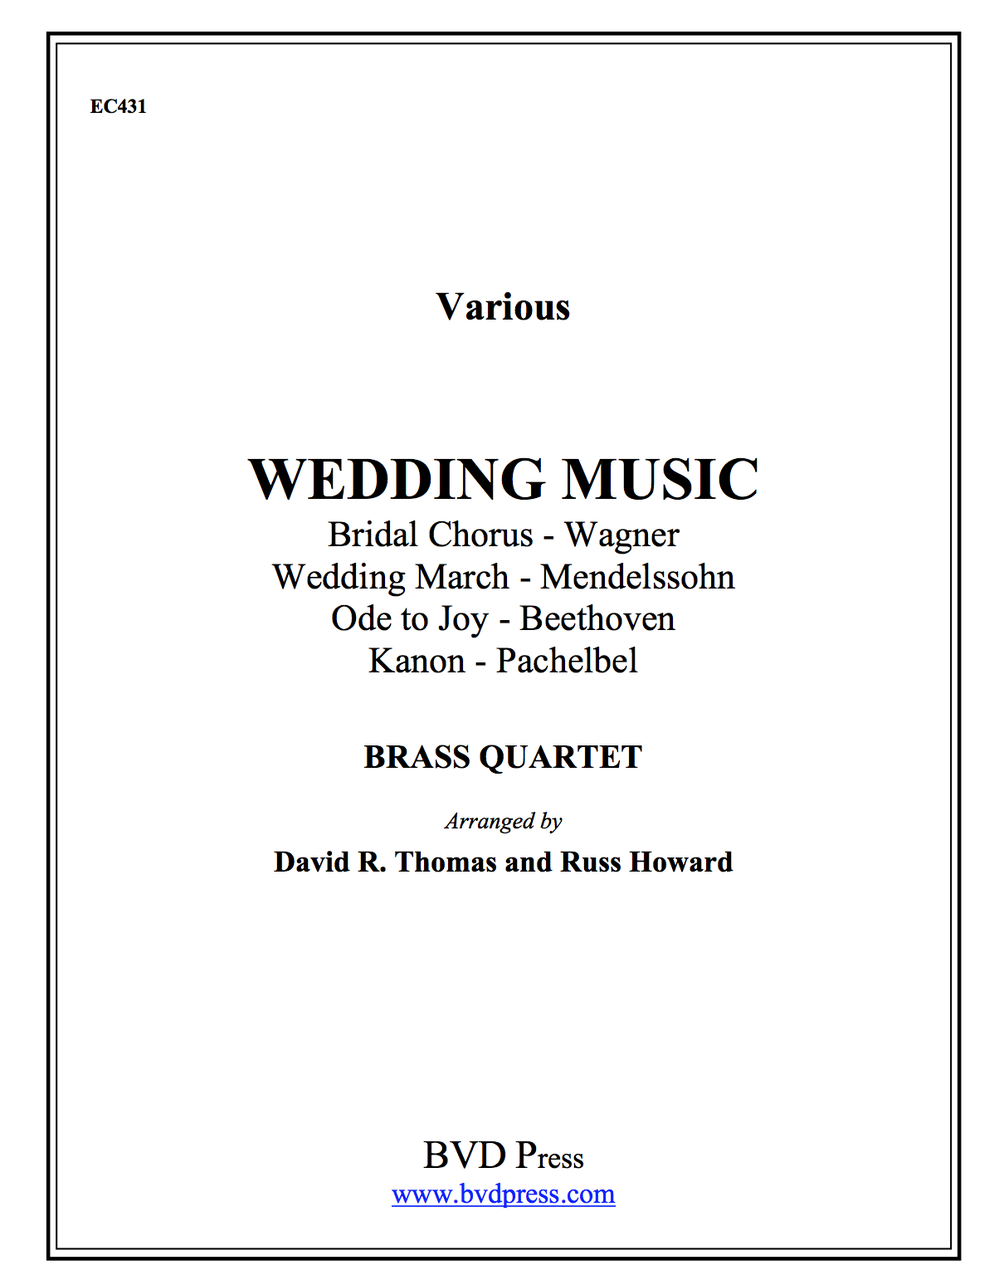 Wedding Music for Brass Quartet (Various/Thomas) PDF Download